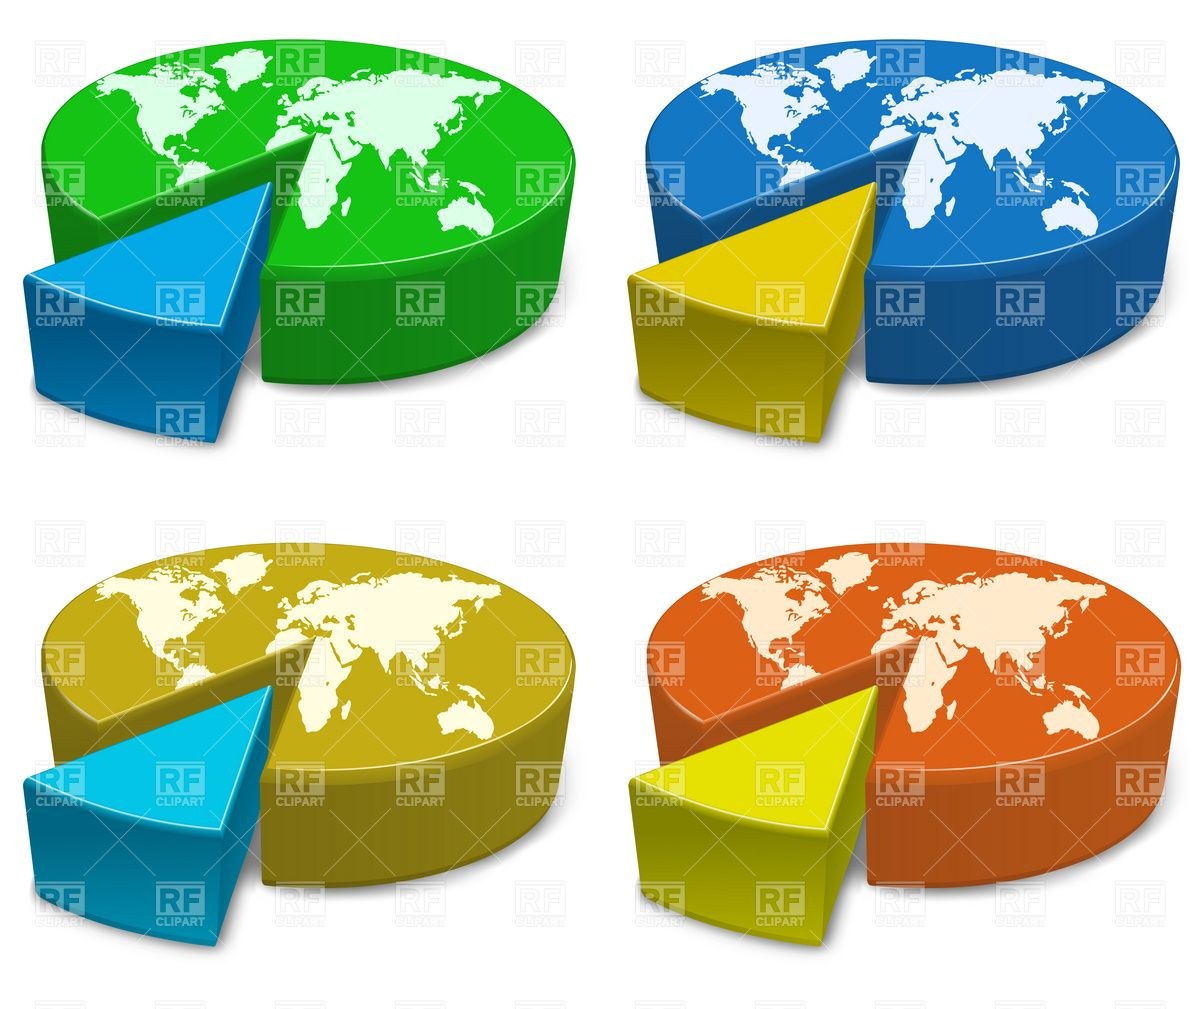 hight resolution of download royalty free pie charts of the globe with the world divided into two parts